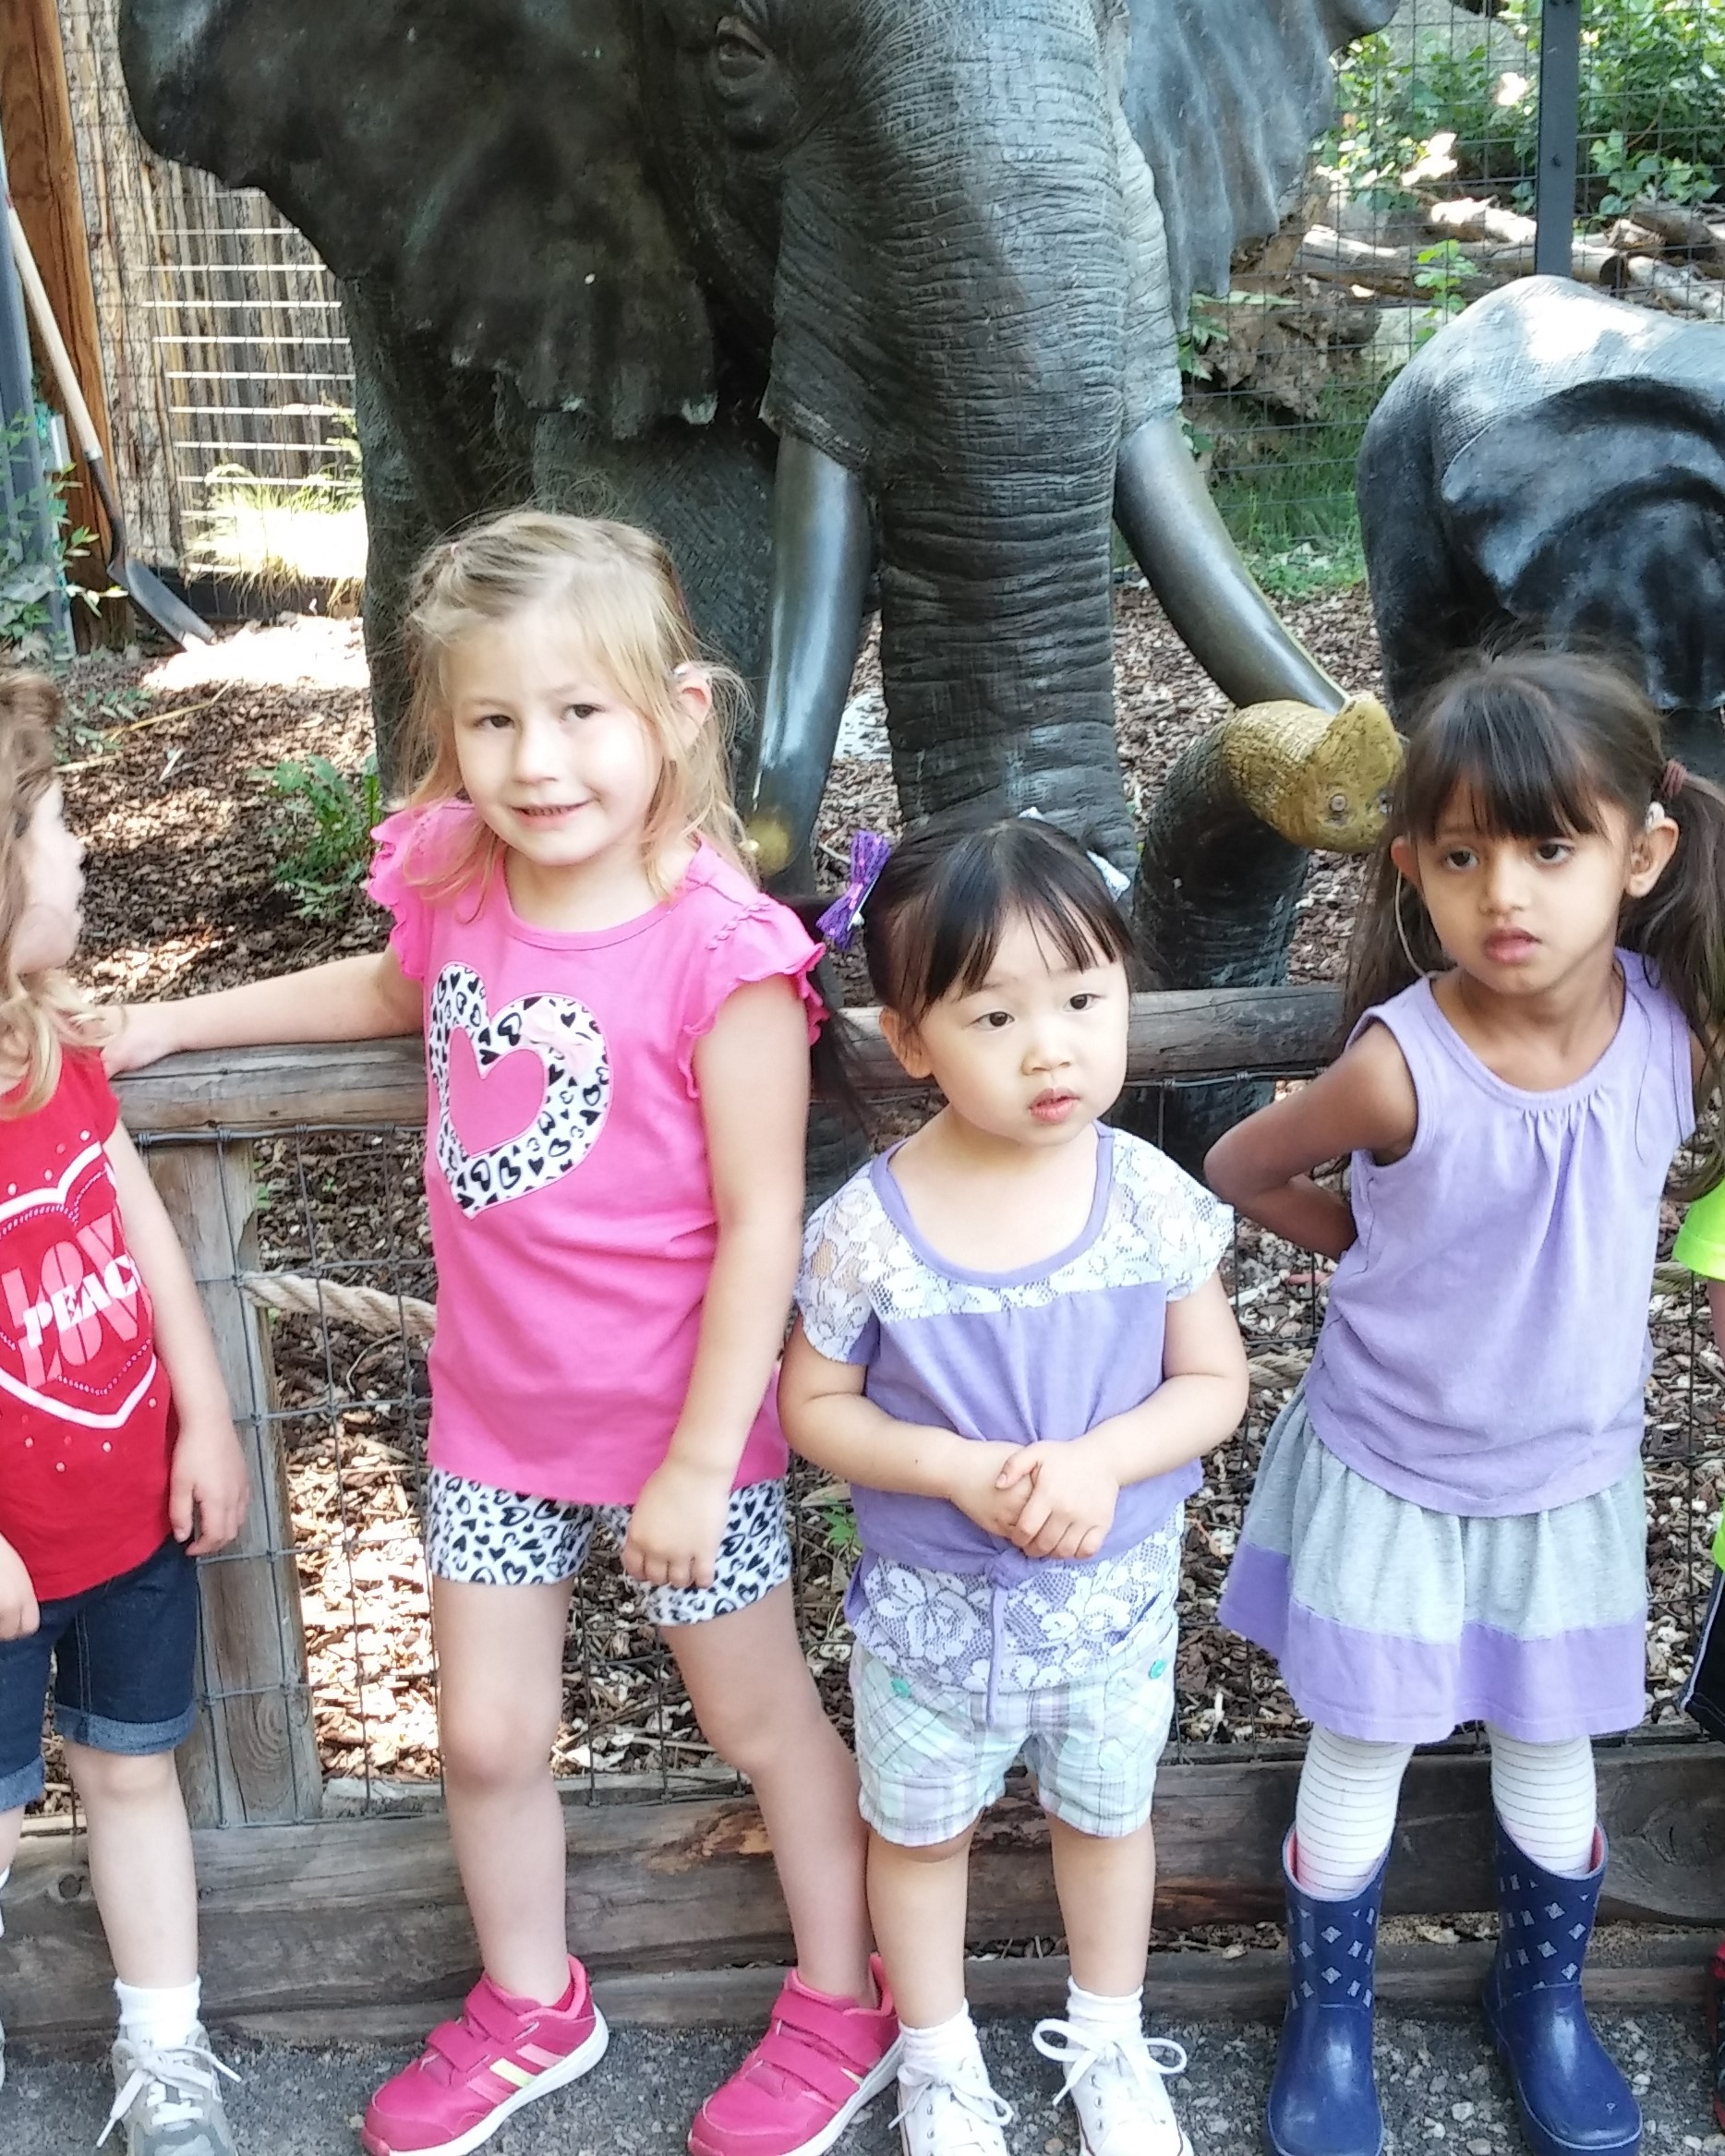 pre-school children posing in front of elephant statue